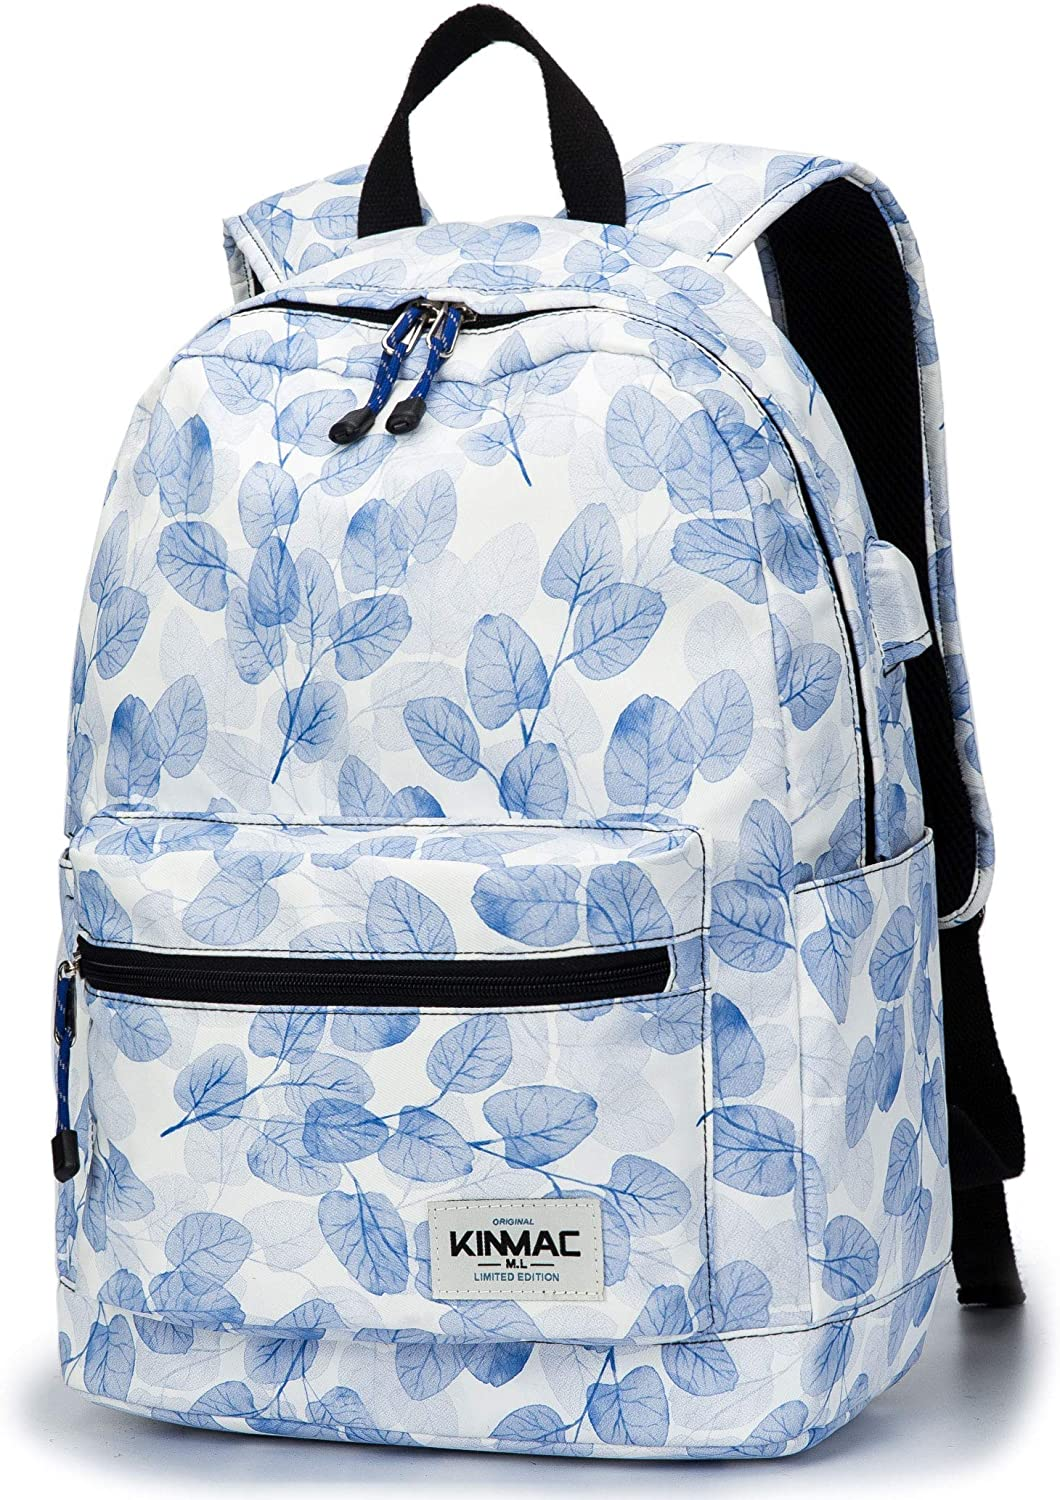 Kinmac Waterproof Laptop Travel Outdoor Backpack with USB Charging Port for 13 inch 14 inch and 15.6 inch Laptop (Blue Leaf)